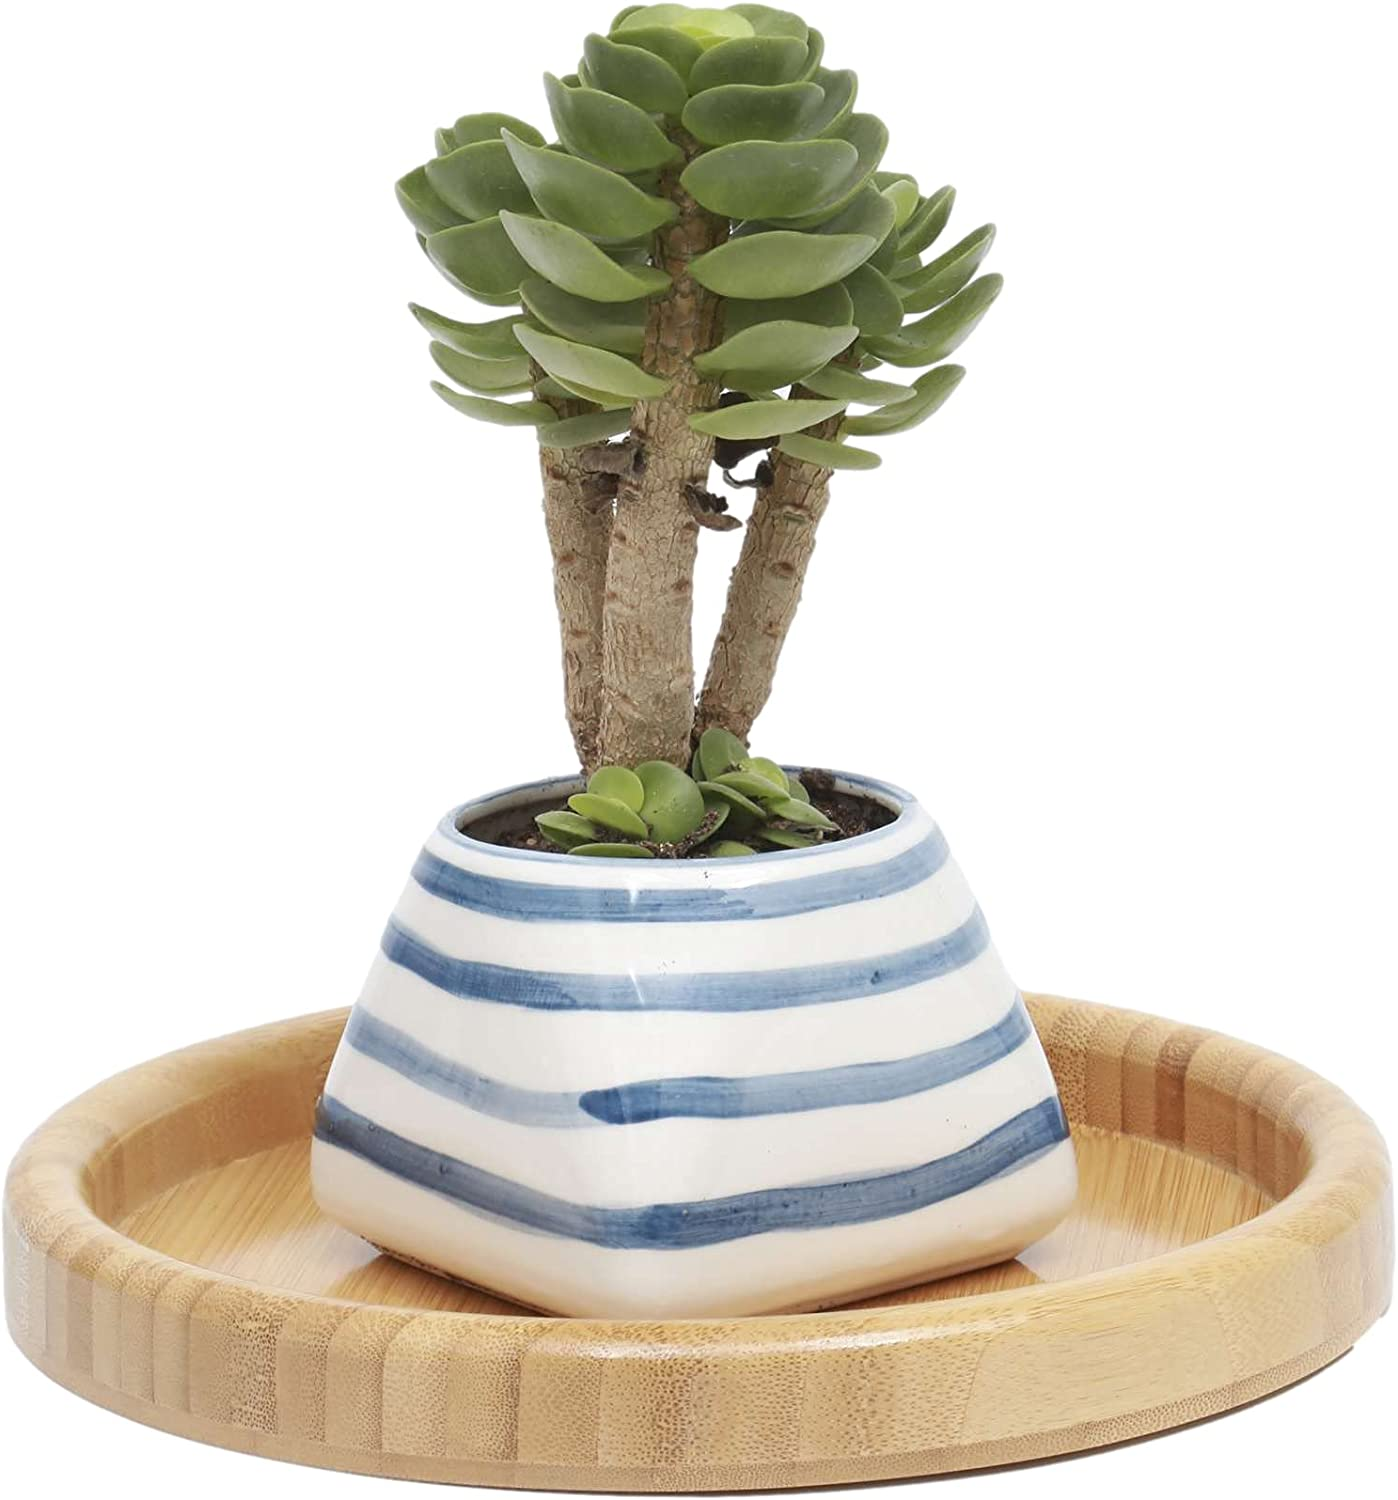 Touch Miss 5% OFF Ceramic Planter Small Pots Plants 9. 1 Cheap mail order specialty store for of Piece